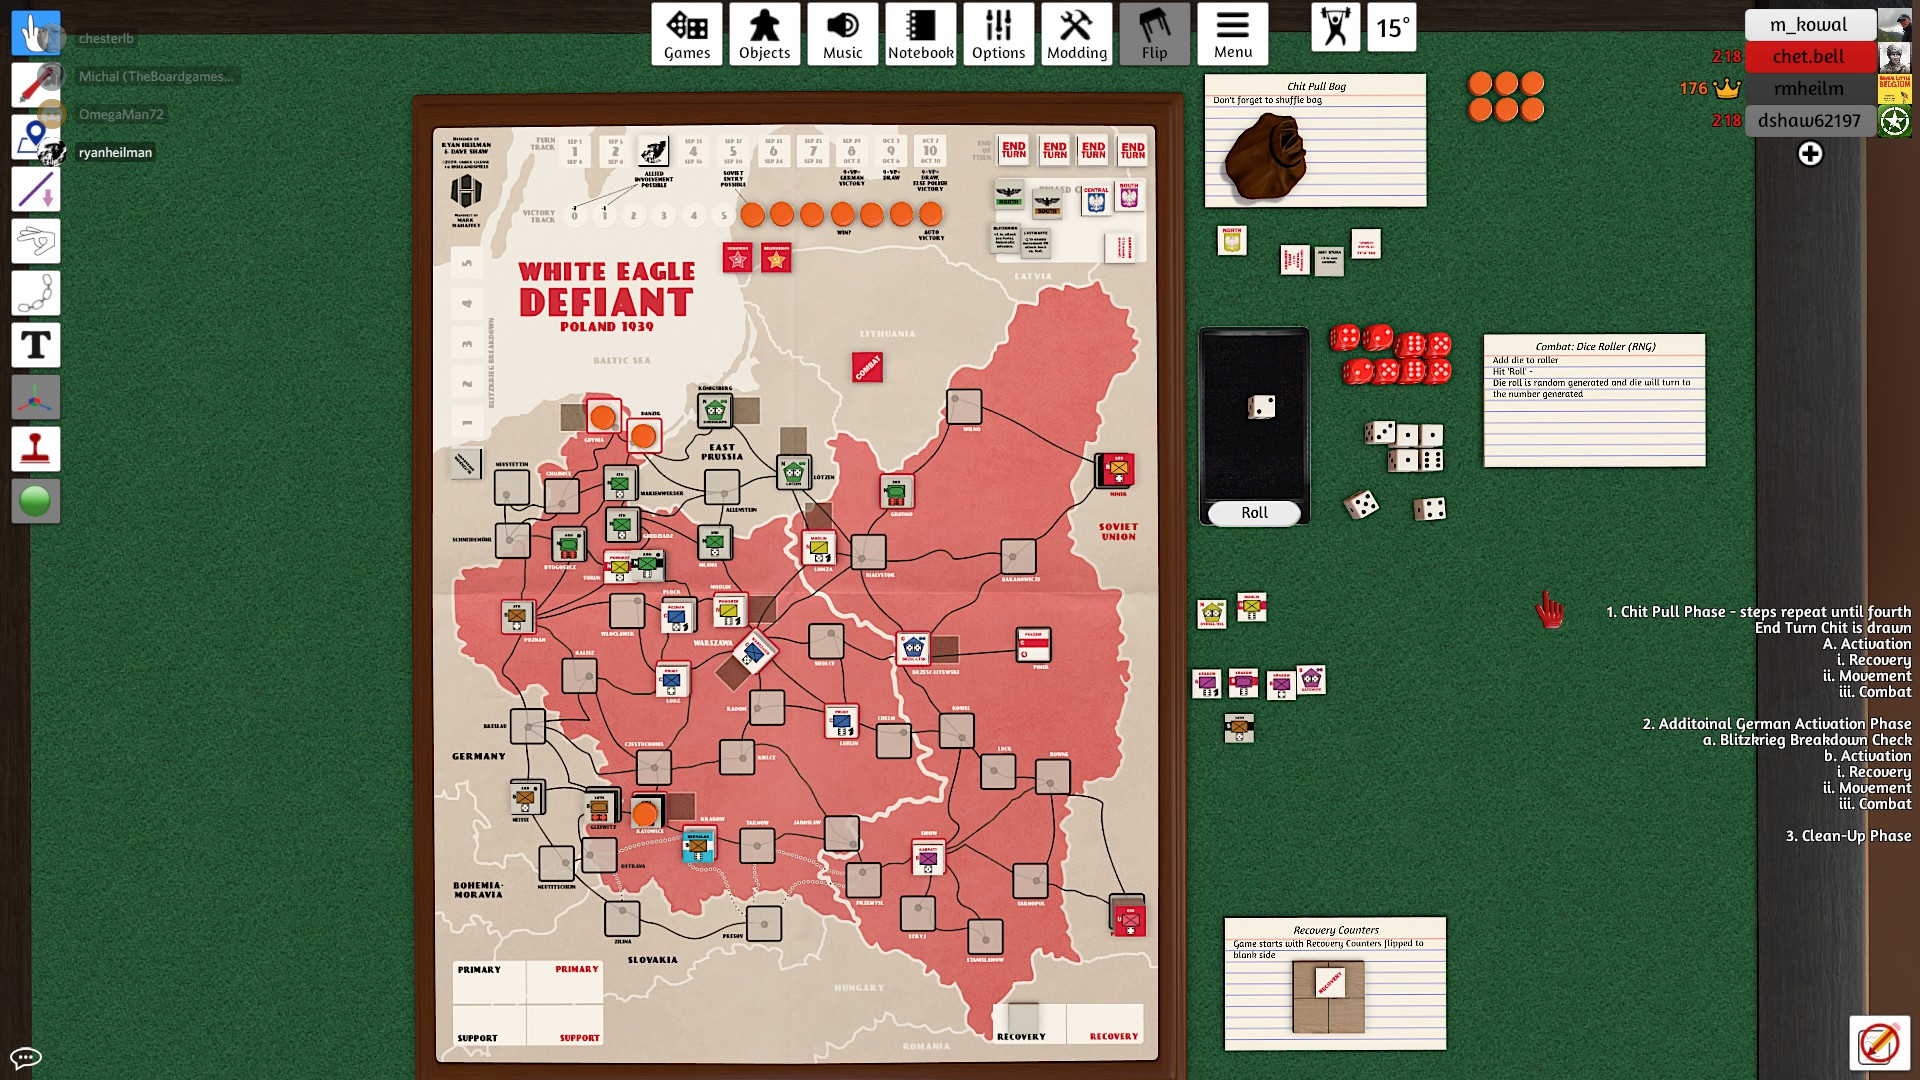 End of Turn 3; 5 VPs for German side - one more will allow USSR entry.